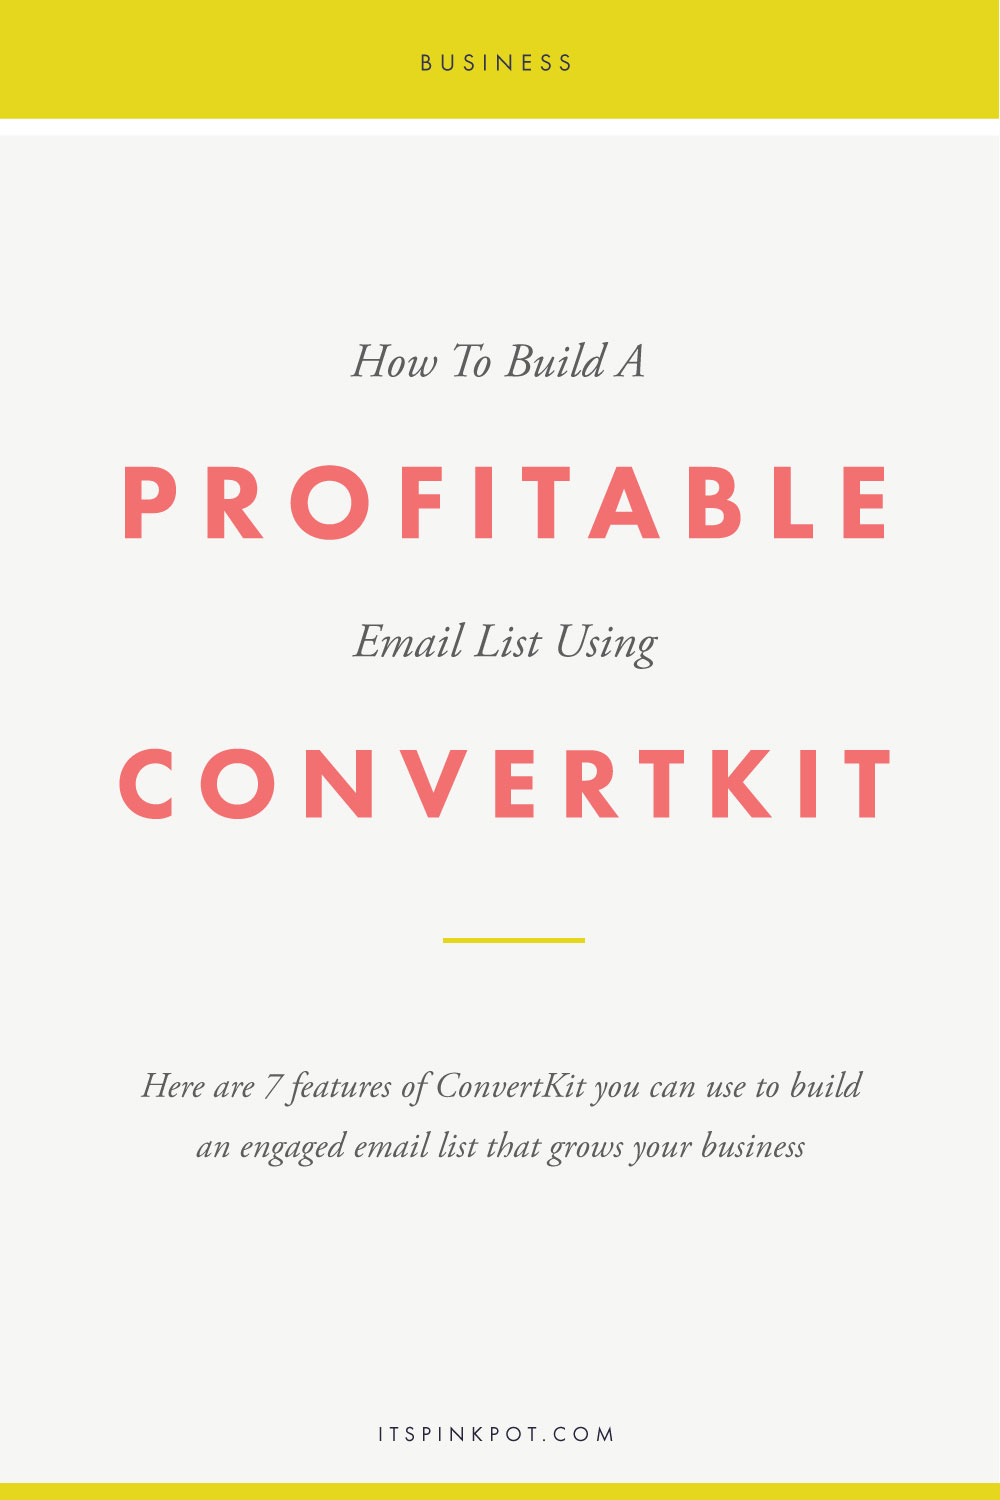 Well, there has been one magic tool aka ConvertKit that has helped me grow not just a huge email list but also an engaged email list with people who write back to my emails, read what I have to say and trust me enough to buy my products! Here are 7 ways you can use ConvertKit to build an engaged list of email subscribers and grow your business >>